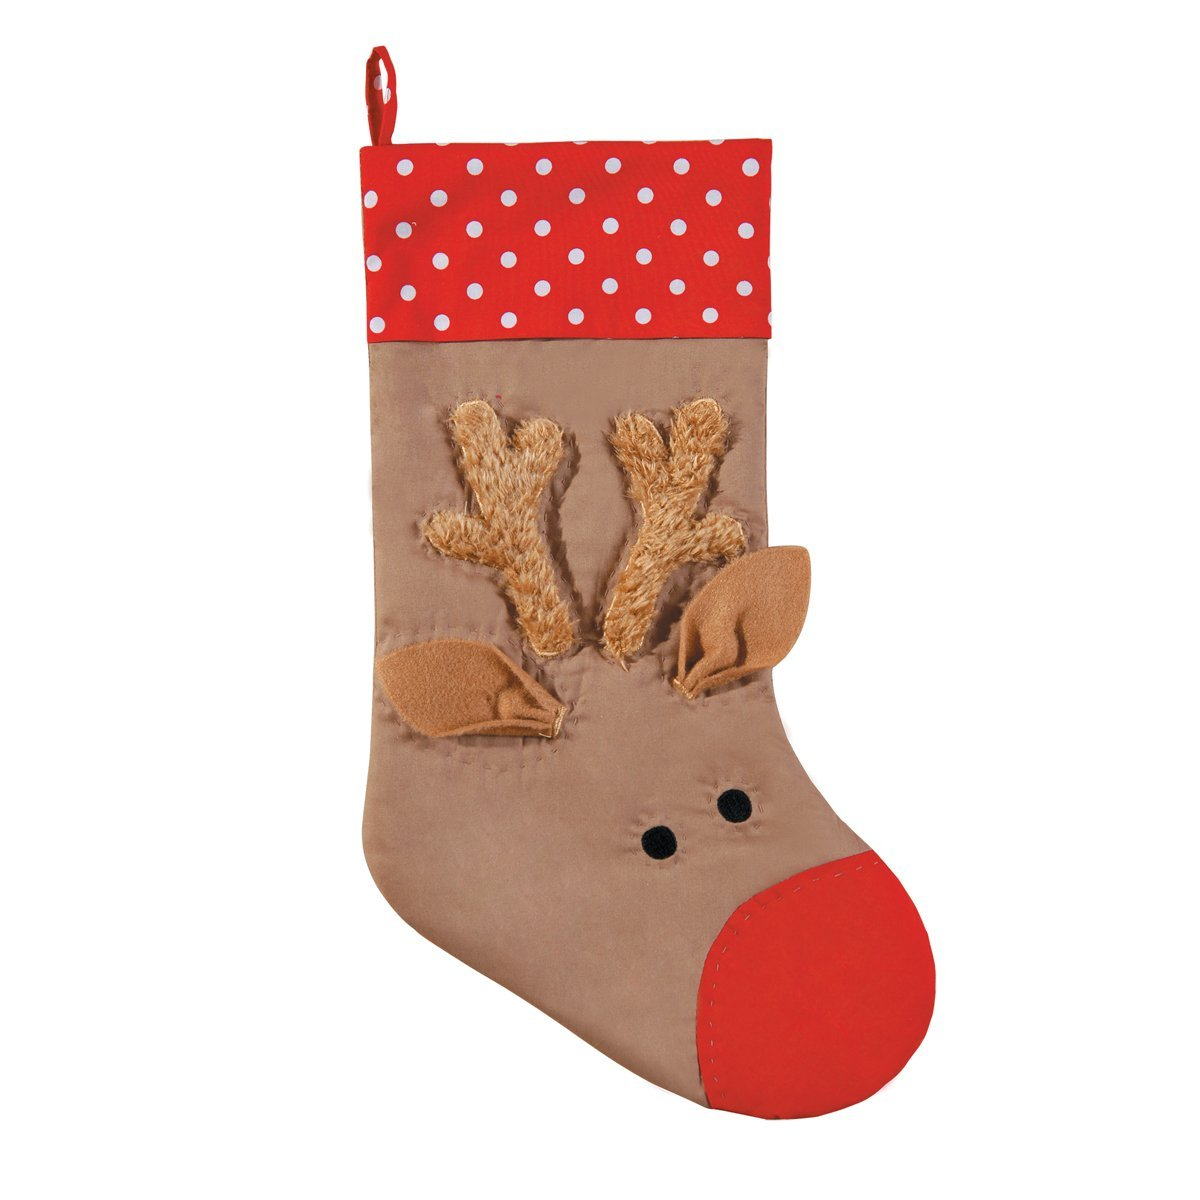 7 Cutest Christmas Stockings for Kids - FamilyEducation